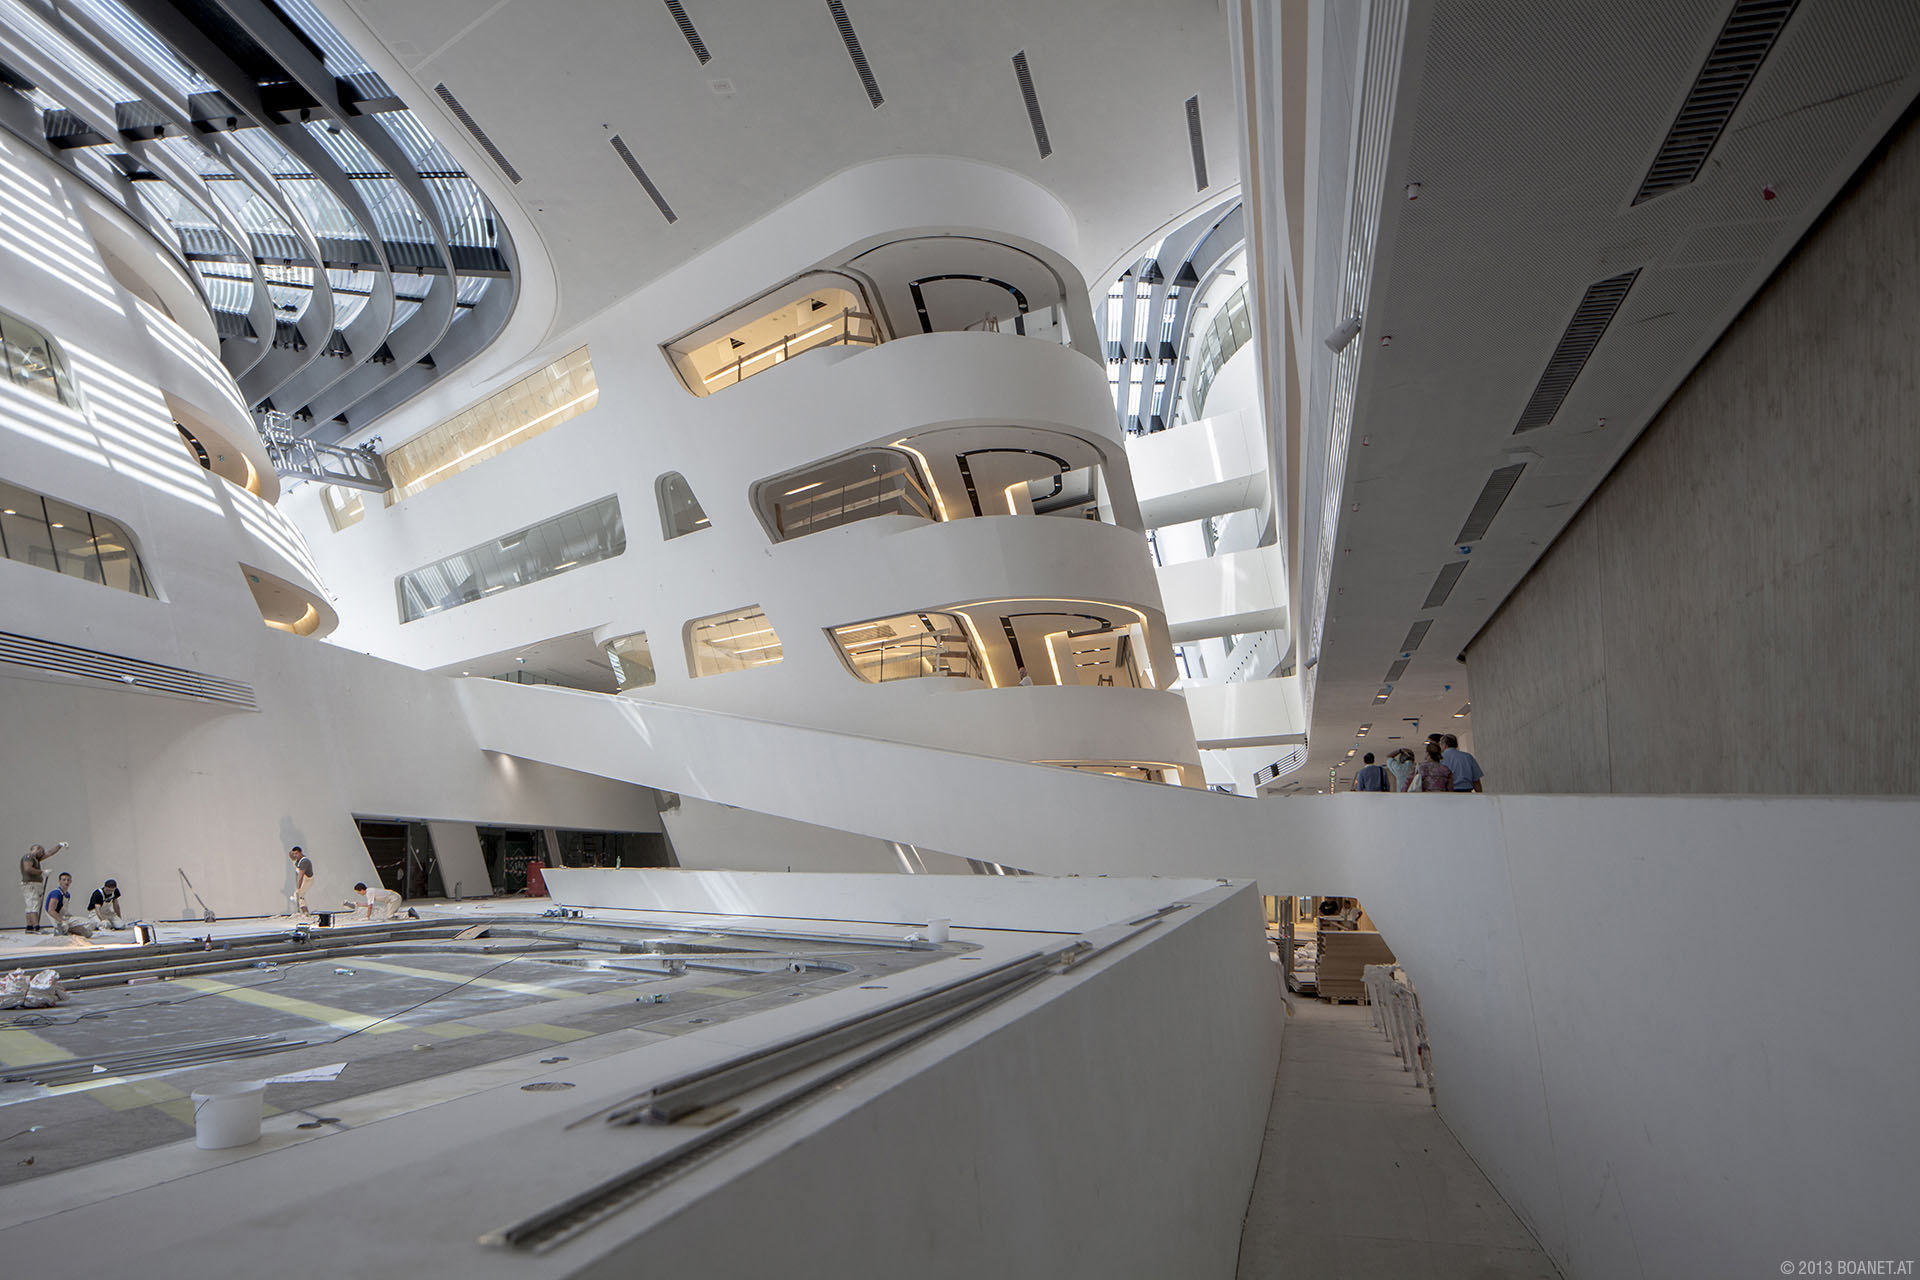 Vienna University Economics Business library building architecture design interior view